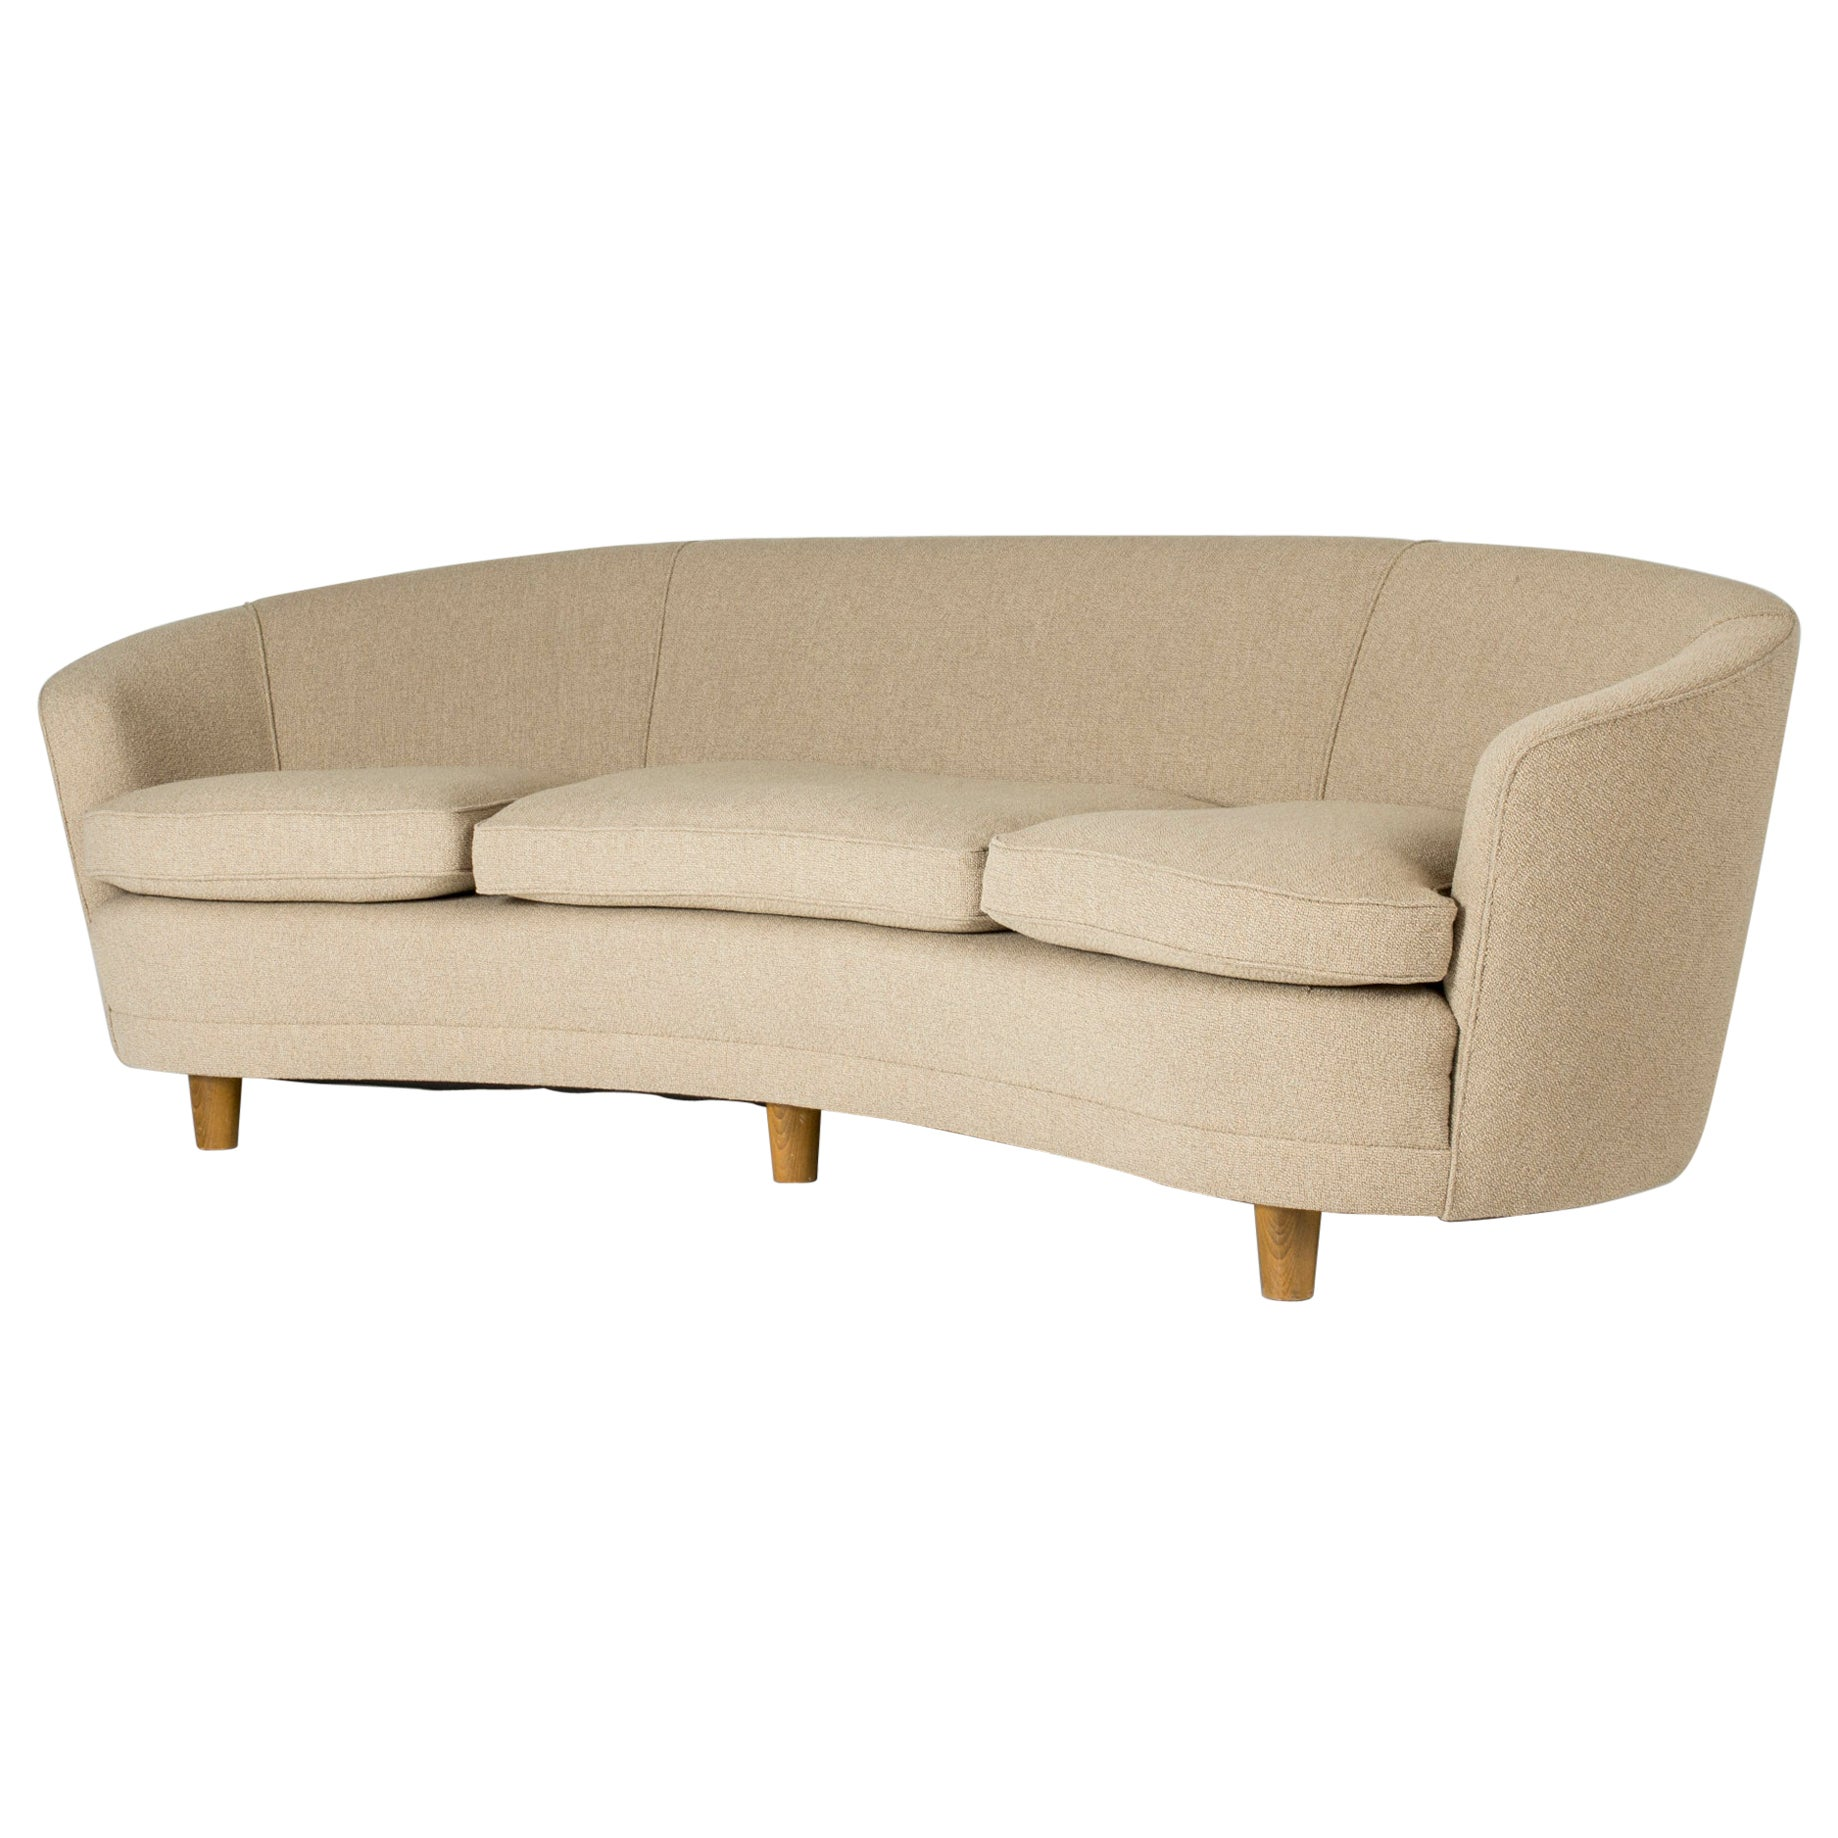 1940s Curved Sofa